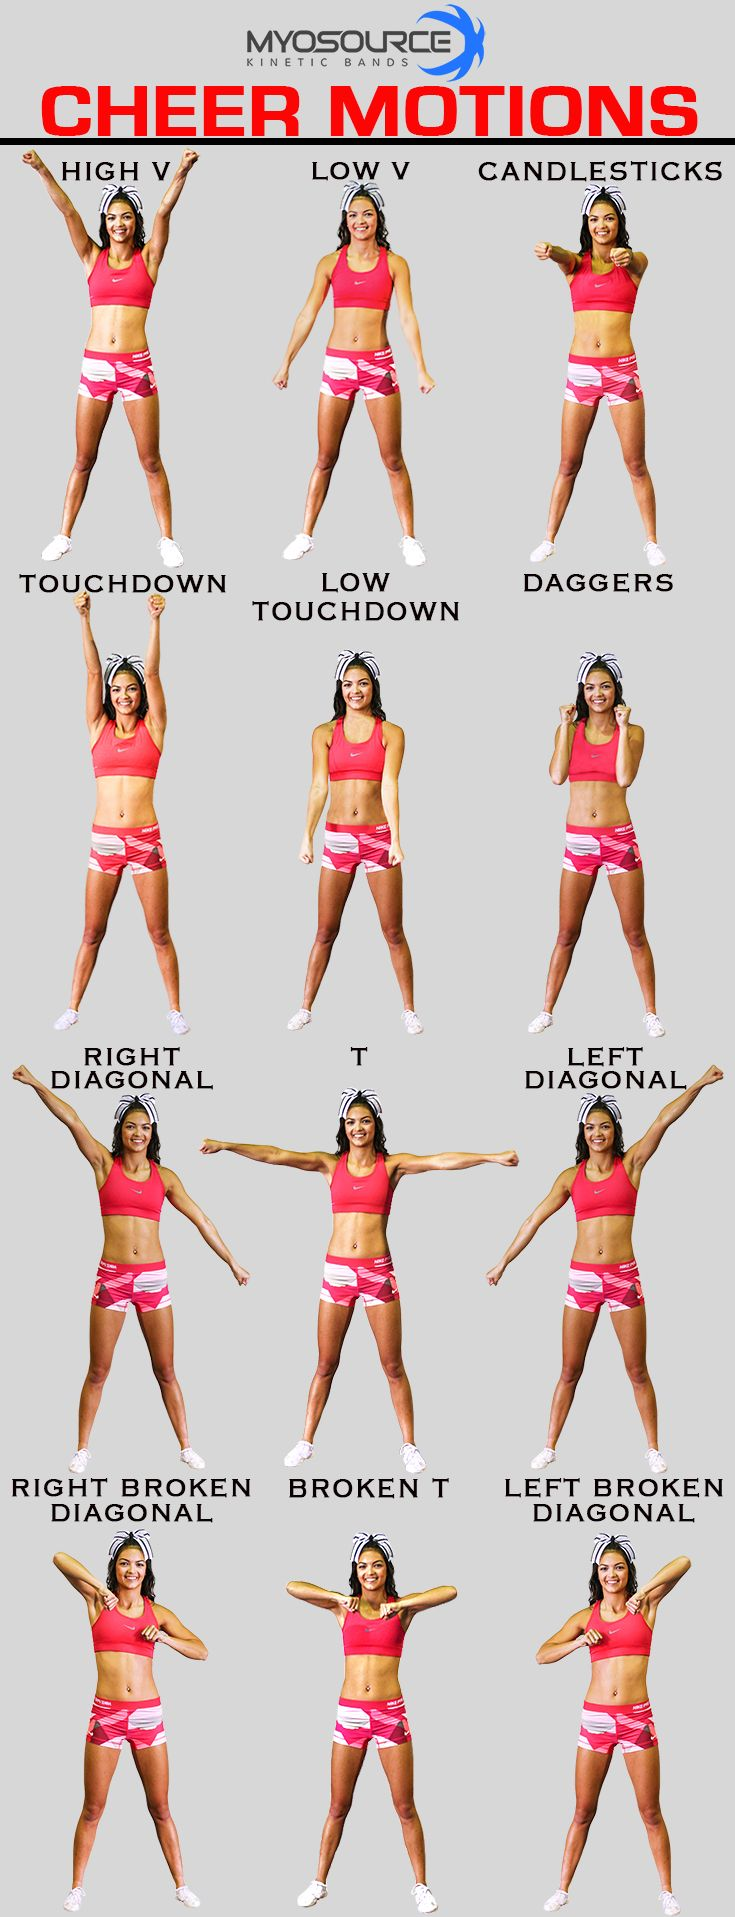 Cheerleading Tips: Practice your motions for cheerleading tryouts and use coupon code PINIT15 for 15% off cheerleading equipment to improve jumps, flexibility and tumbling.